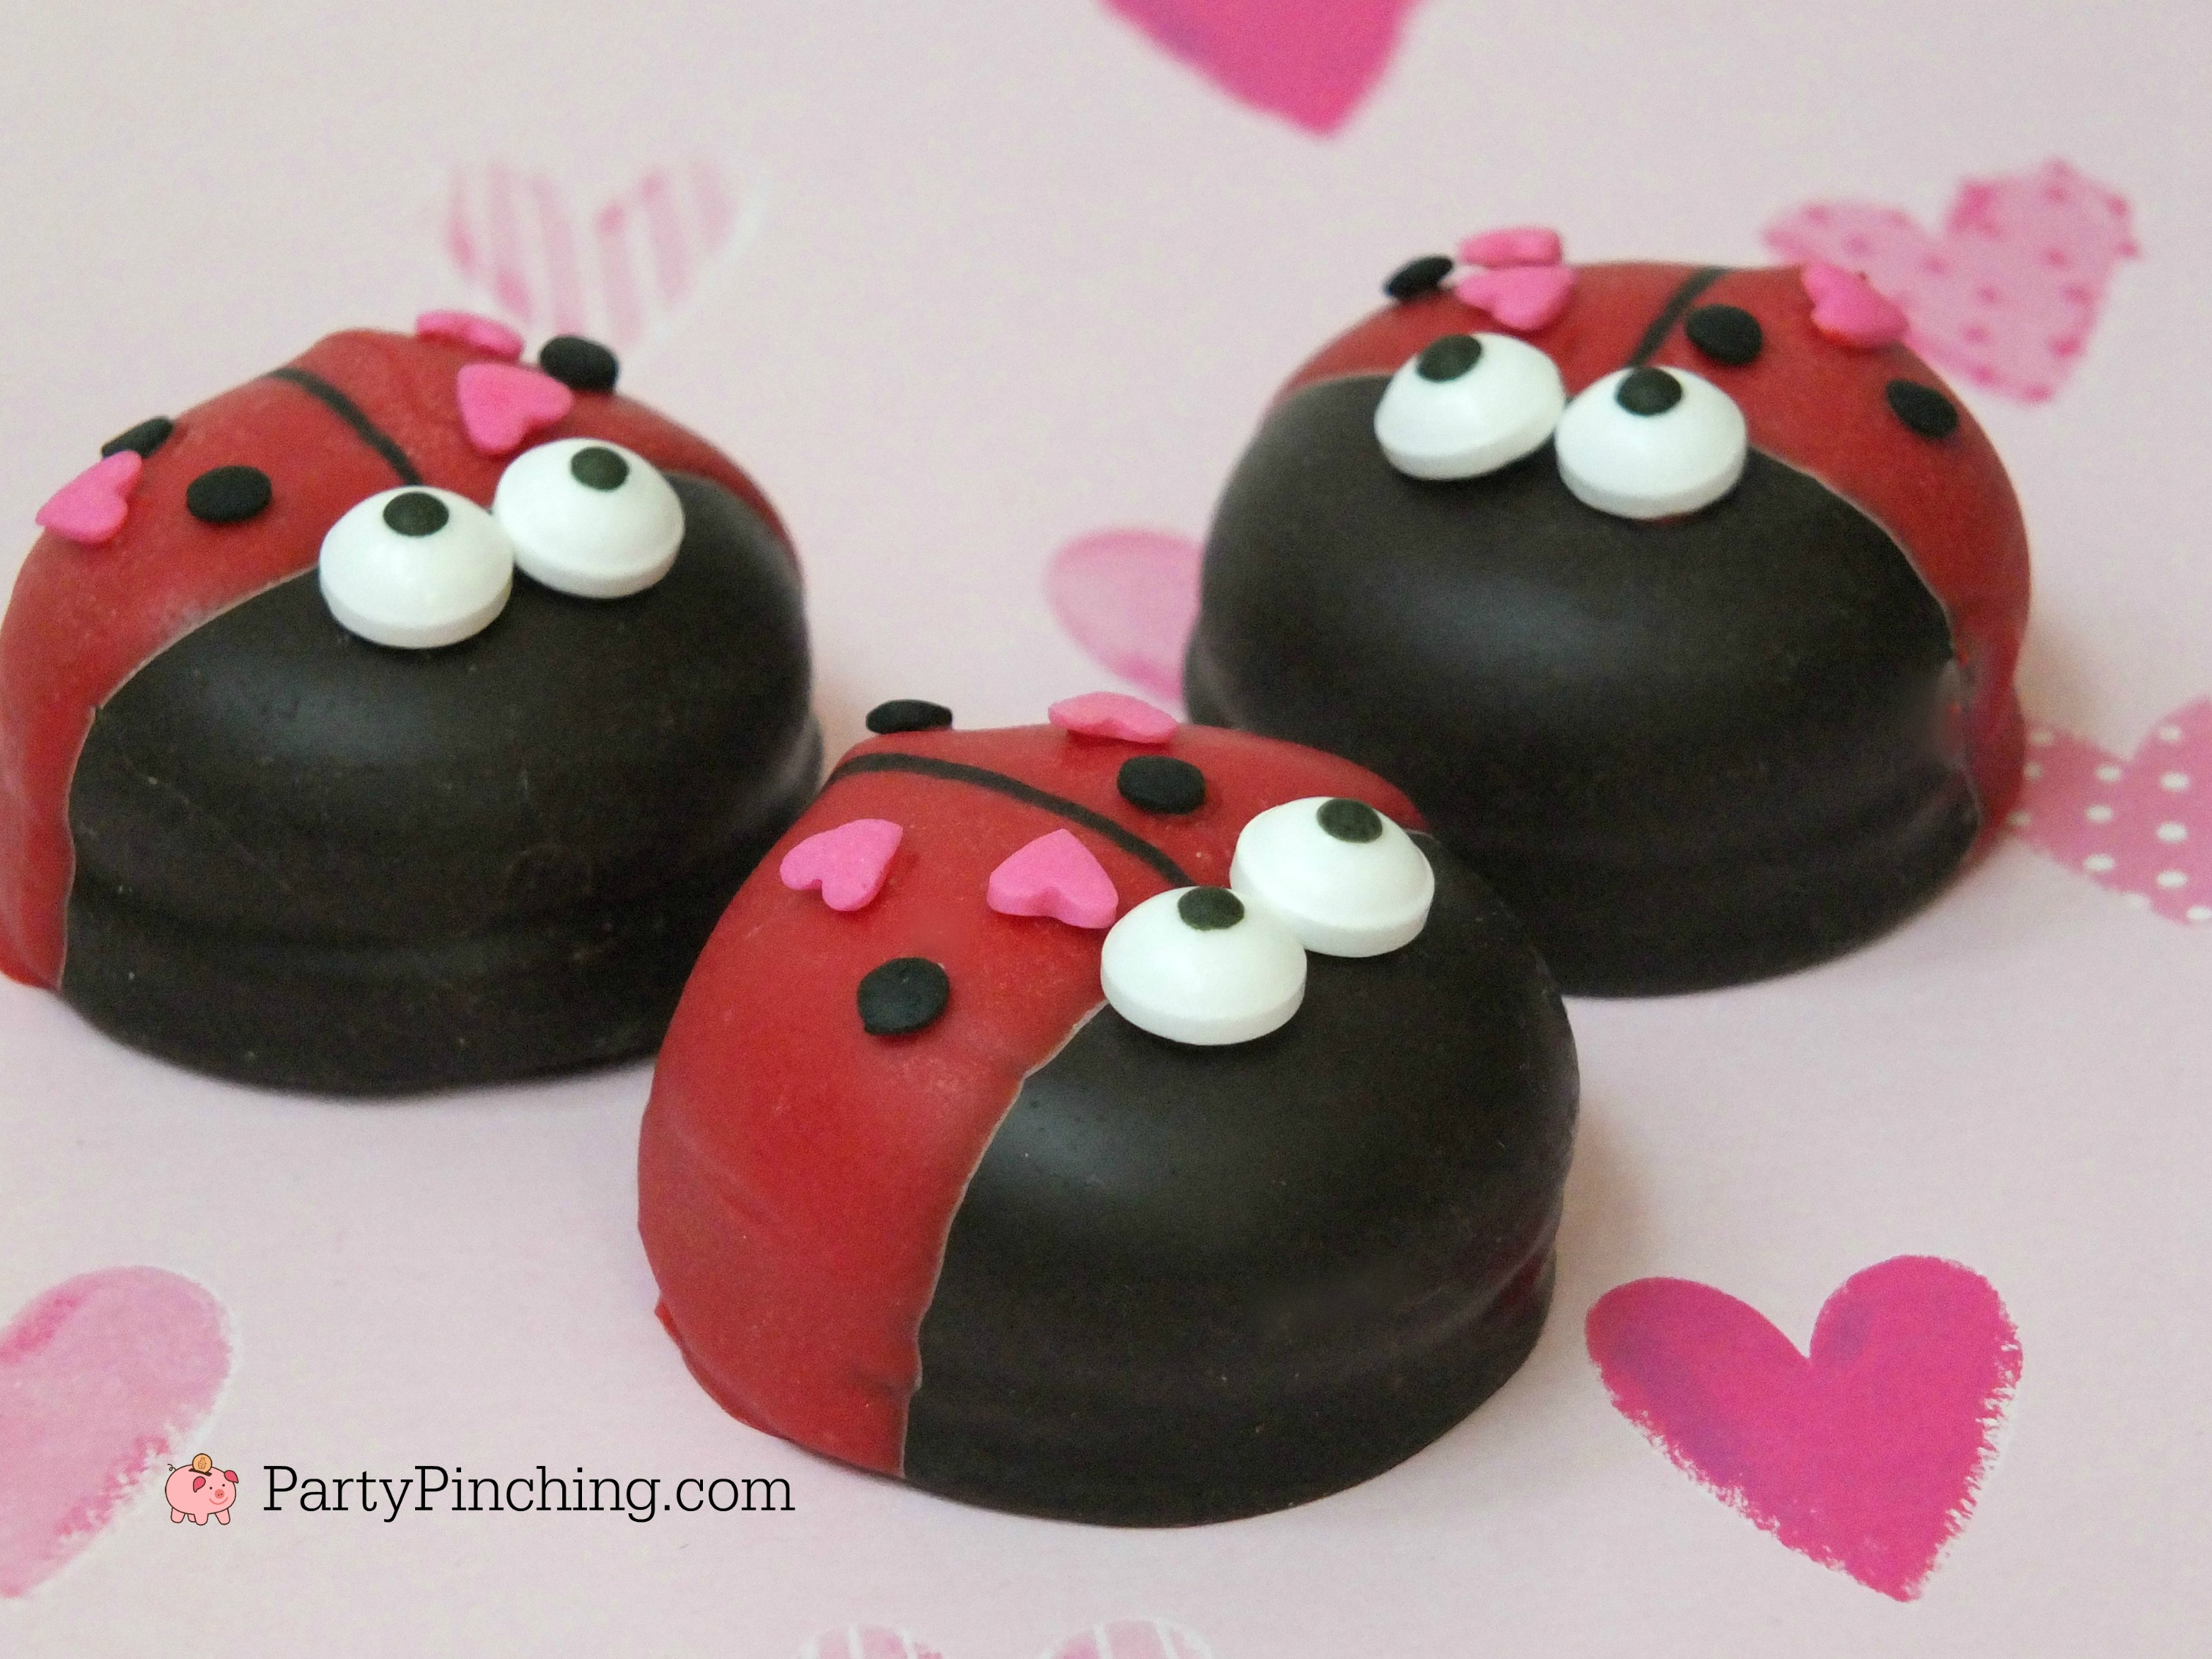 Valentines Day 2020, love bug marshmallow cookies, cute cookies for Valentine's Day, DIY Valentine's Day treat dessert, easy Valentine's Day dessert recipes, cute food, fun food for kids, easy Valentine's Day desserts, mallomars